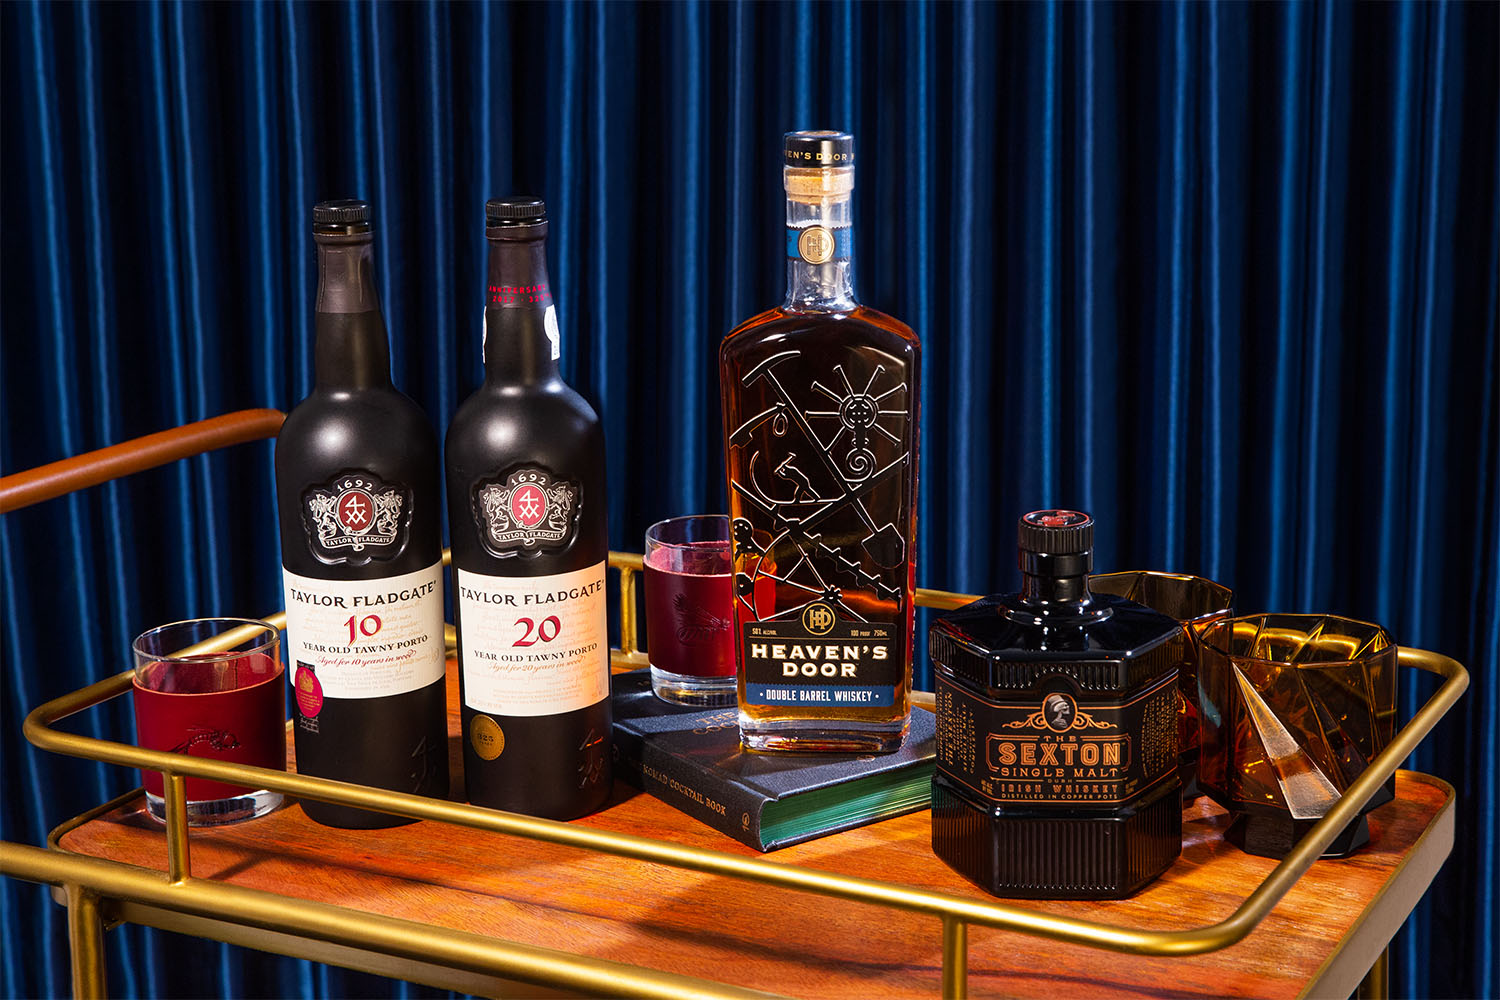 taylor fladgate port, heaven's door whiskey and sexton single malt on a barcart